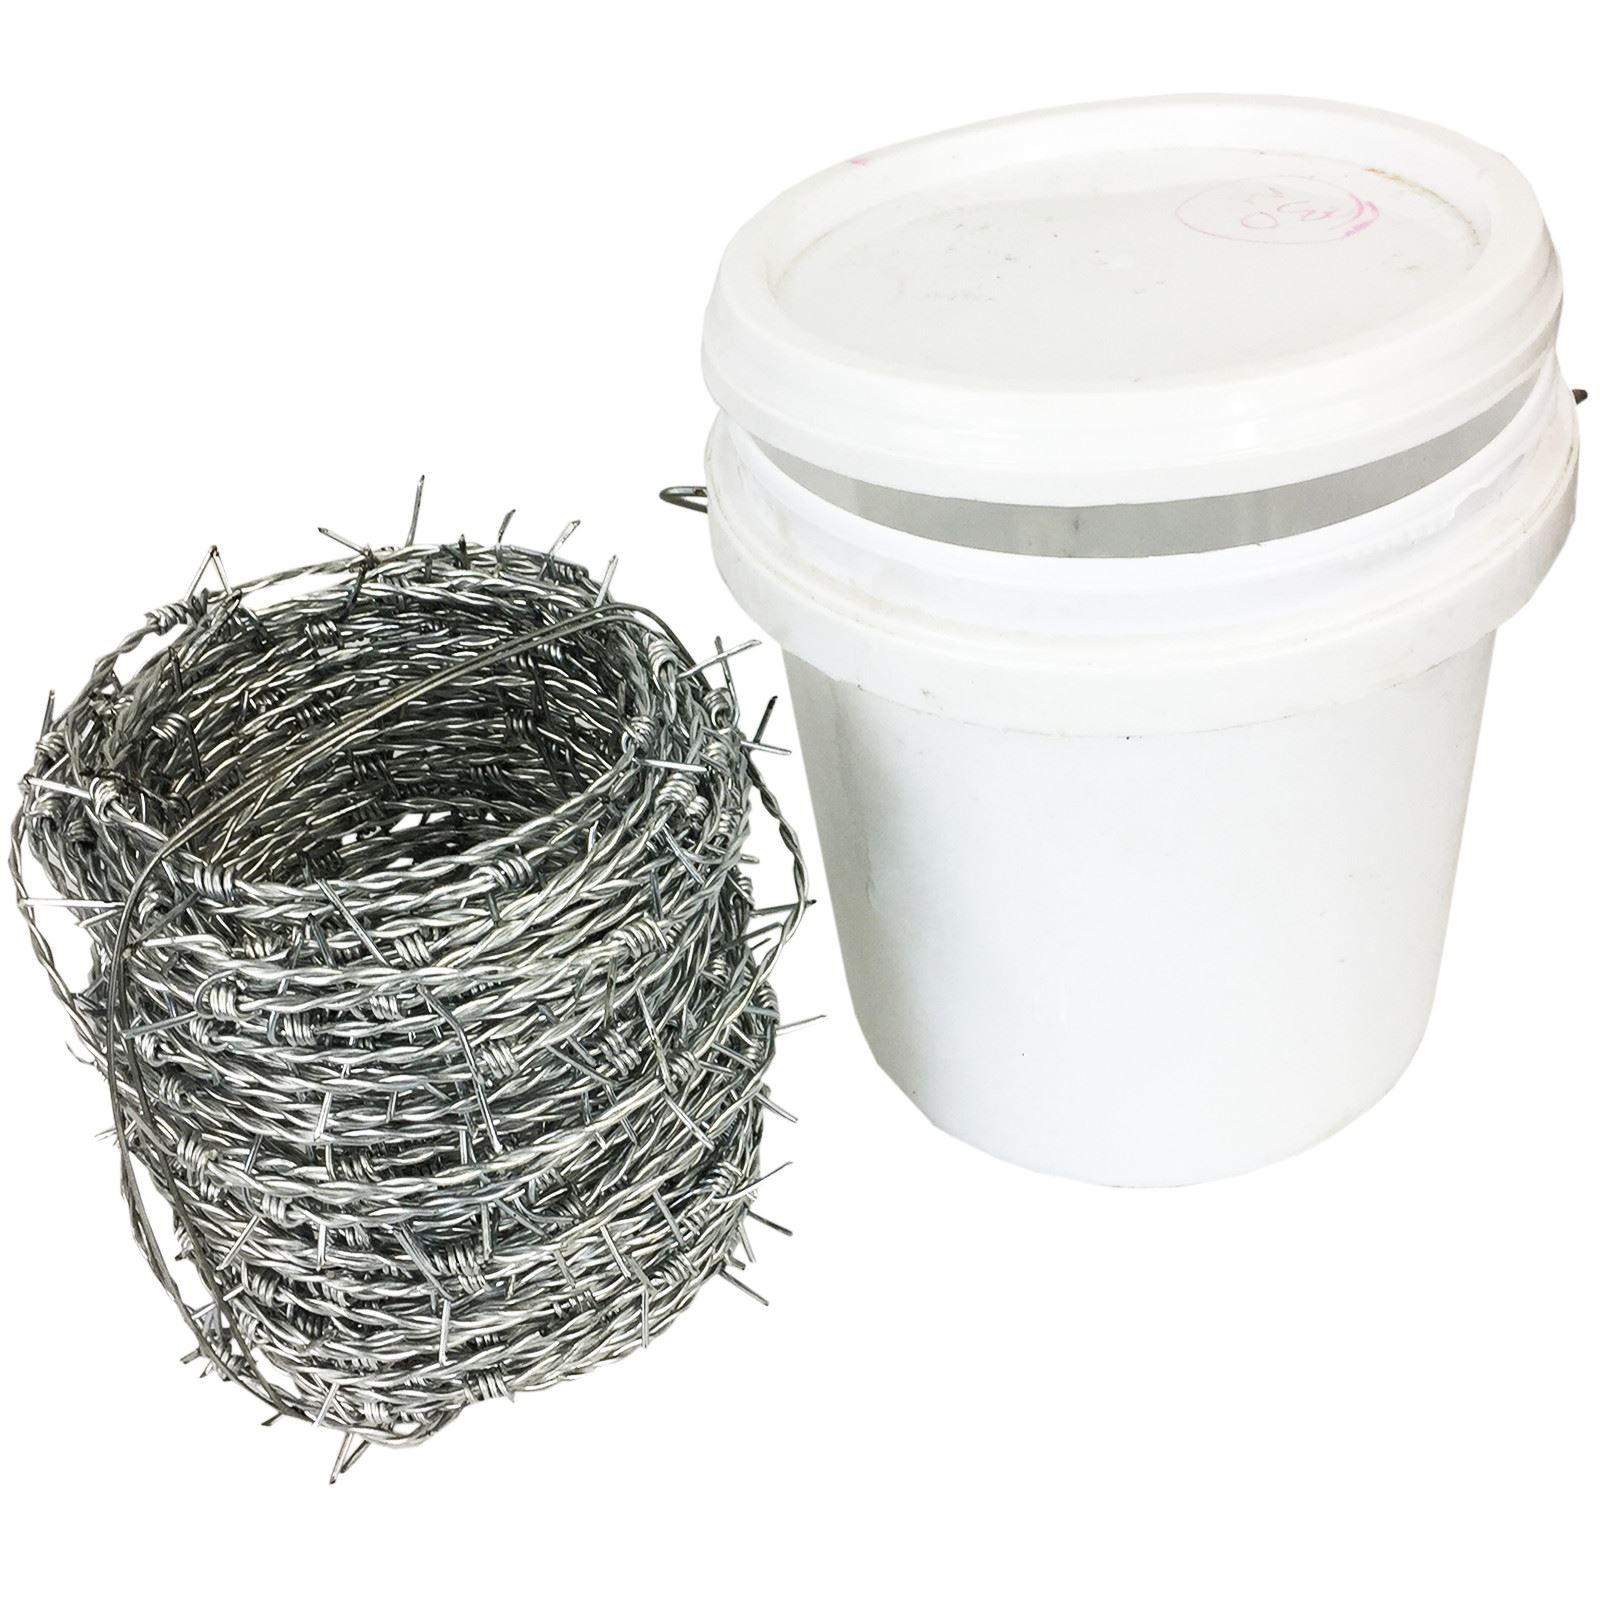 Fancy 2 0 Urd Wire Photos - Everything You Need to Know About Wiring ...